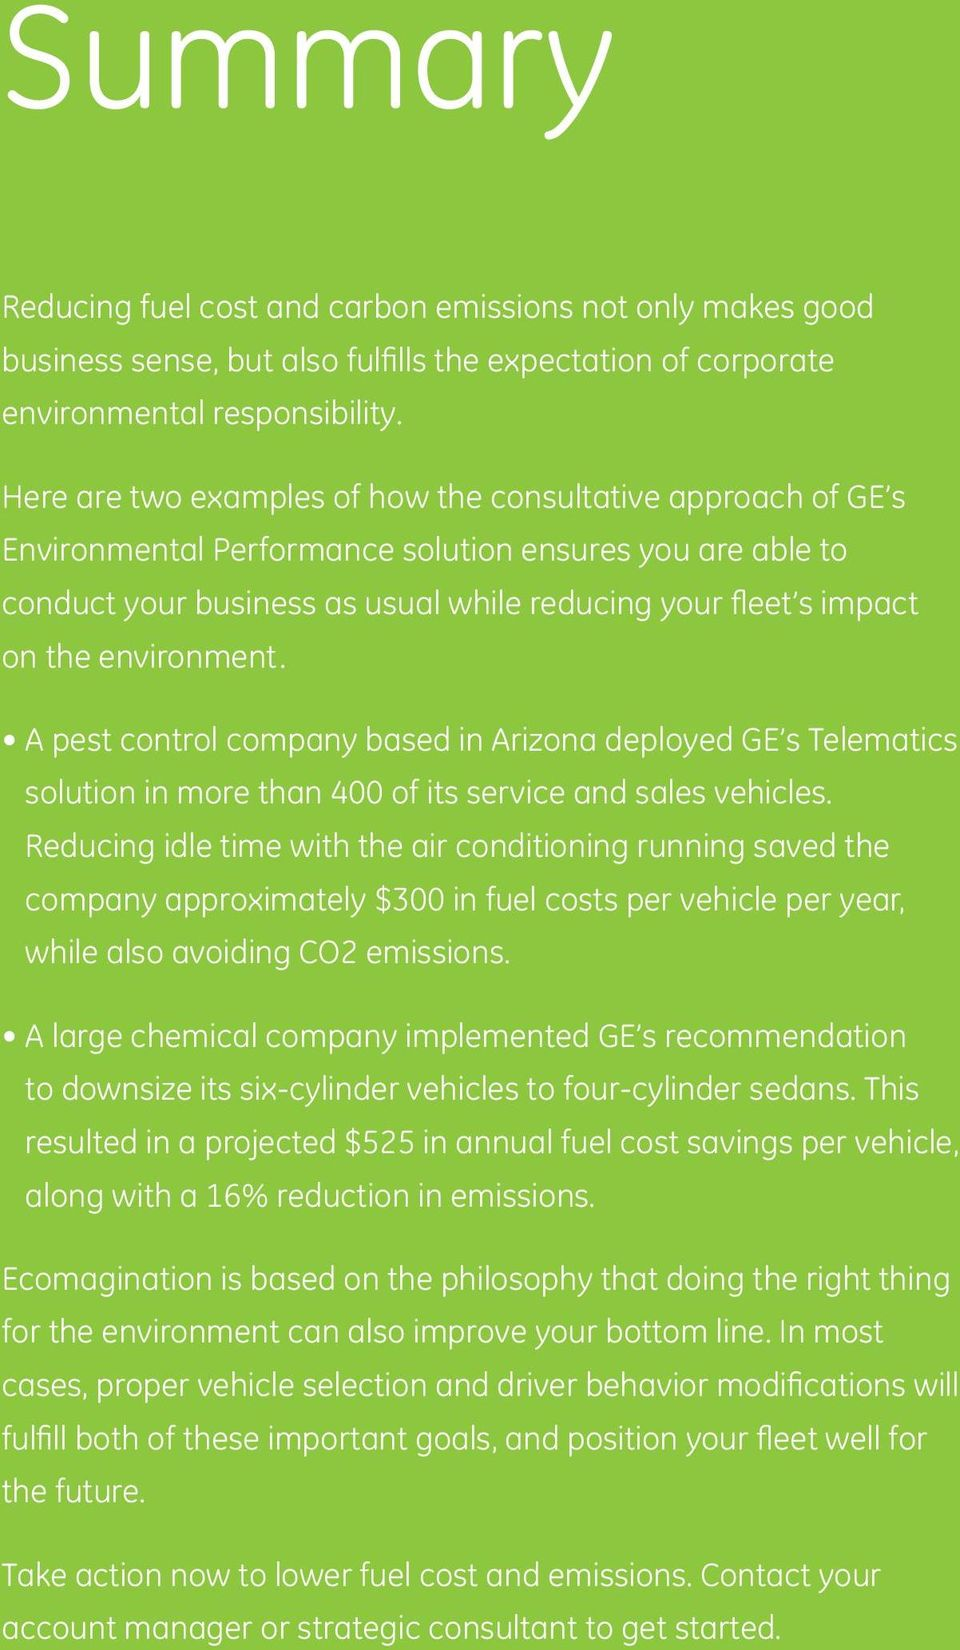 environment. A pest control company based in Arizona deployed GE s Telematics solution in more than 400 of its service and sales vehicles.